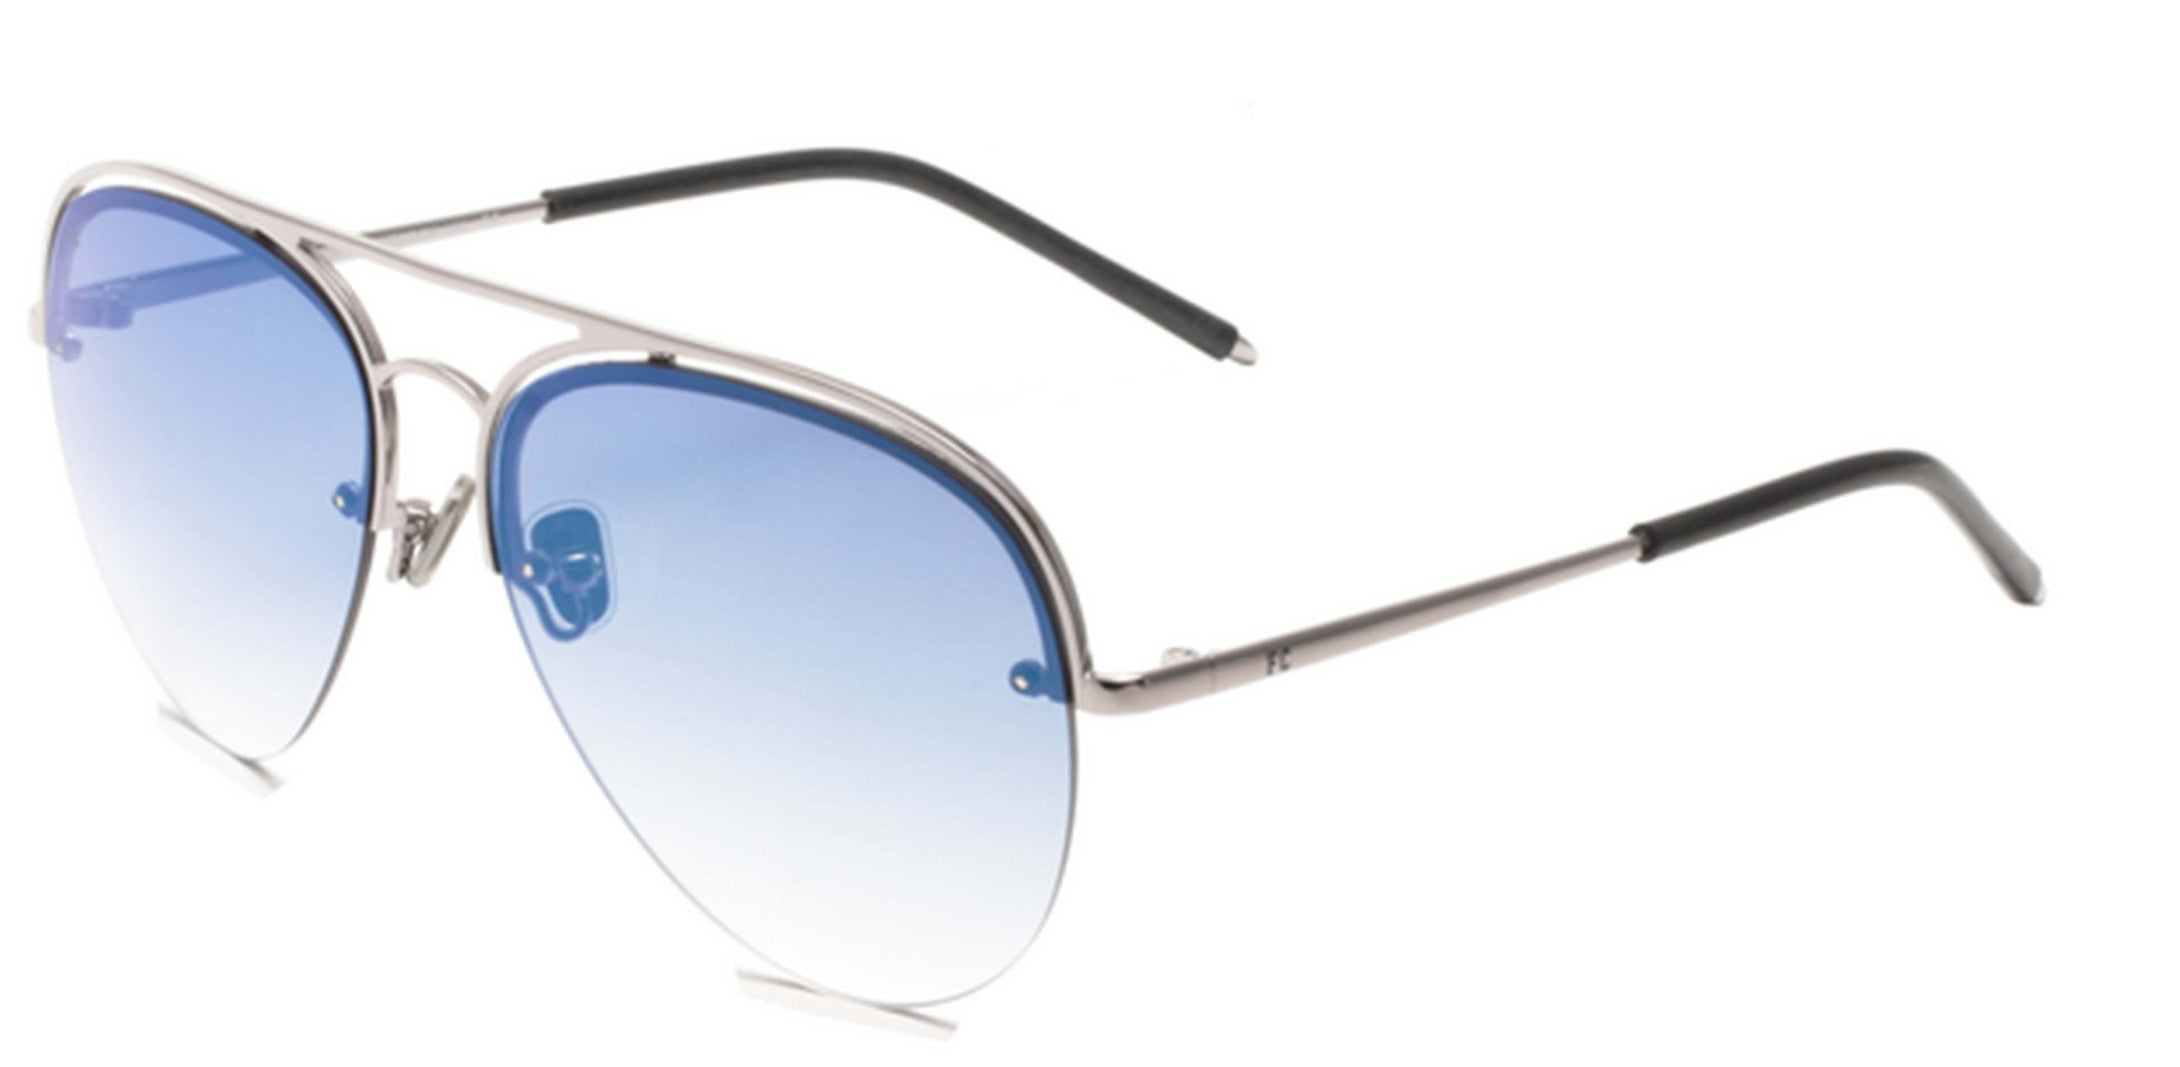 French Connection FC-7400-C3 Gunmetal Aviator Sunglasses